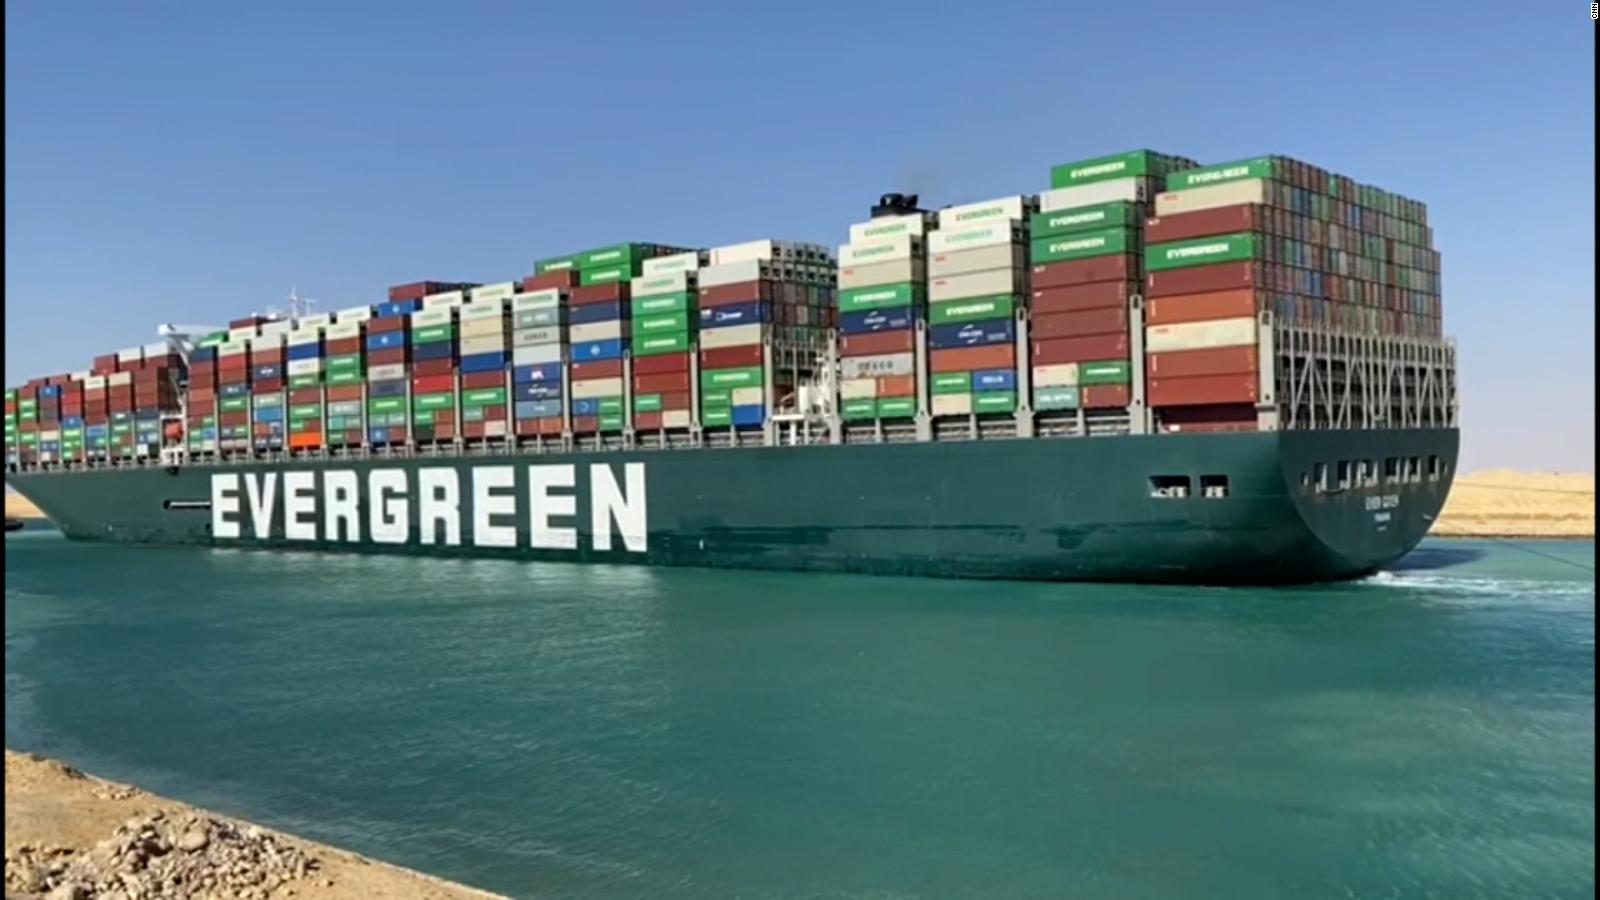 Suez Canal: Watch video of dislodged Ever Given container ship in Egypt -  CNN Video